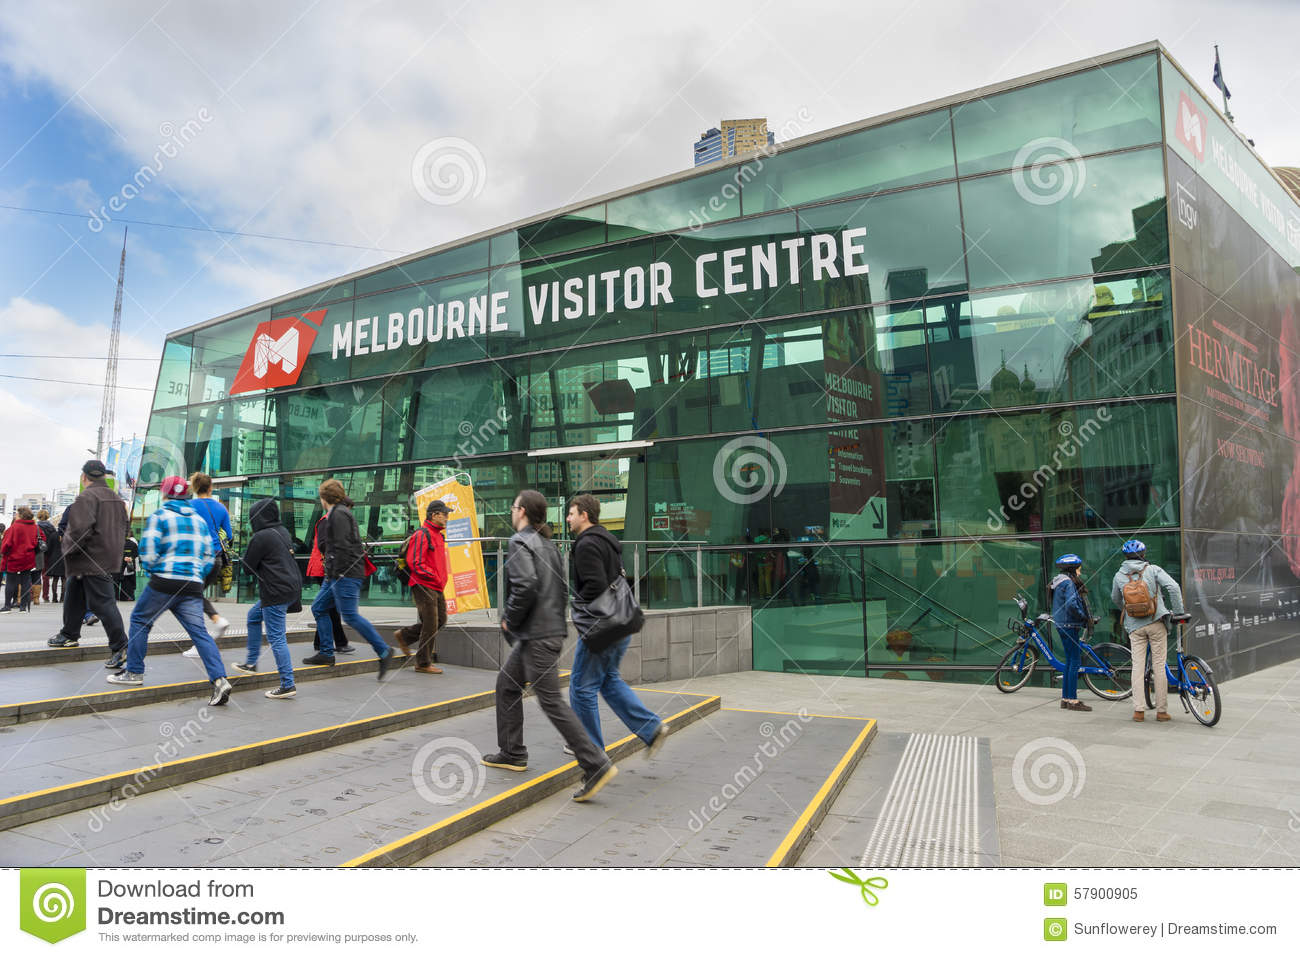 Date or pass pictures in Melbourne